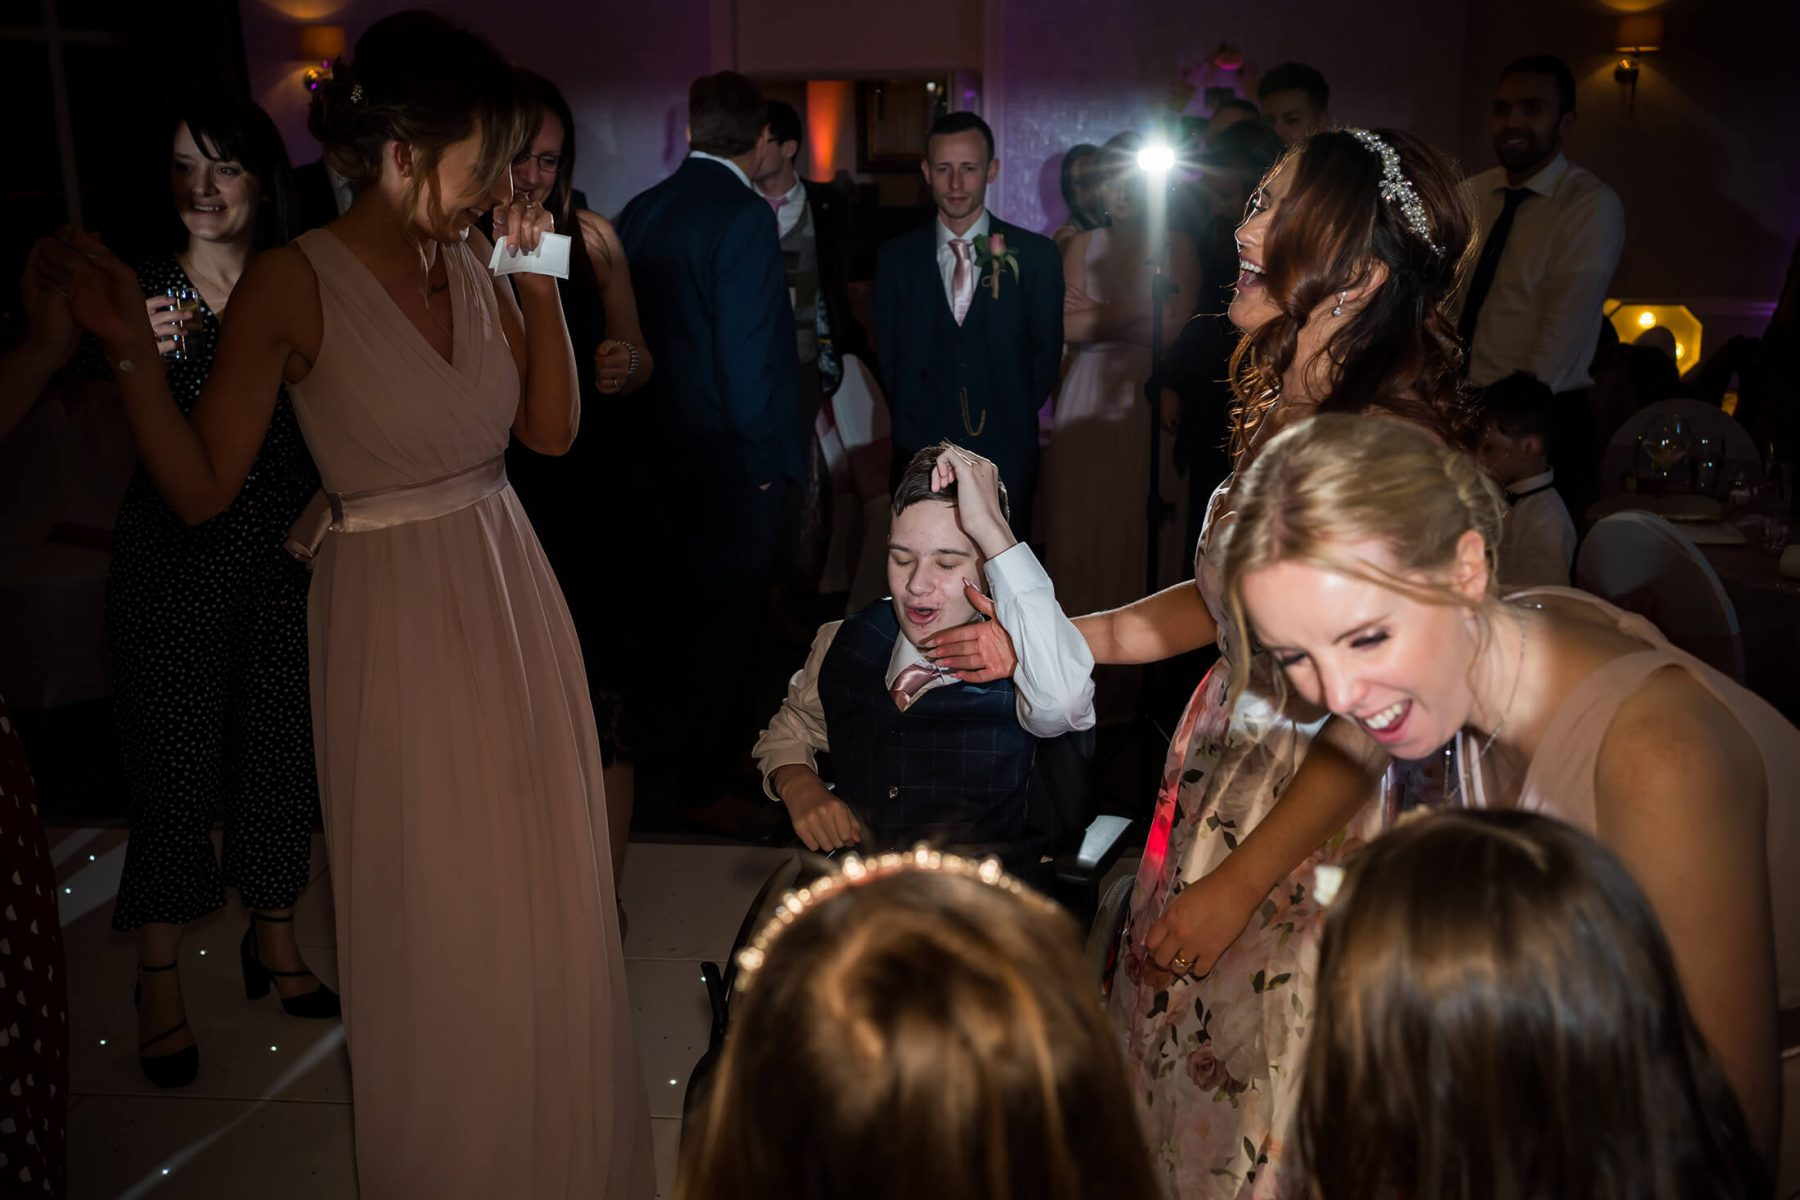 Hollin Hall Hotel Wedding Photographer - The bride's son dances in his wheelchair during the first dance